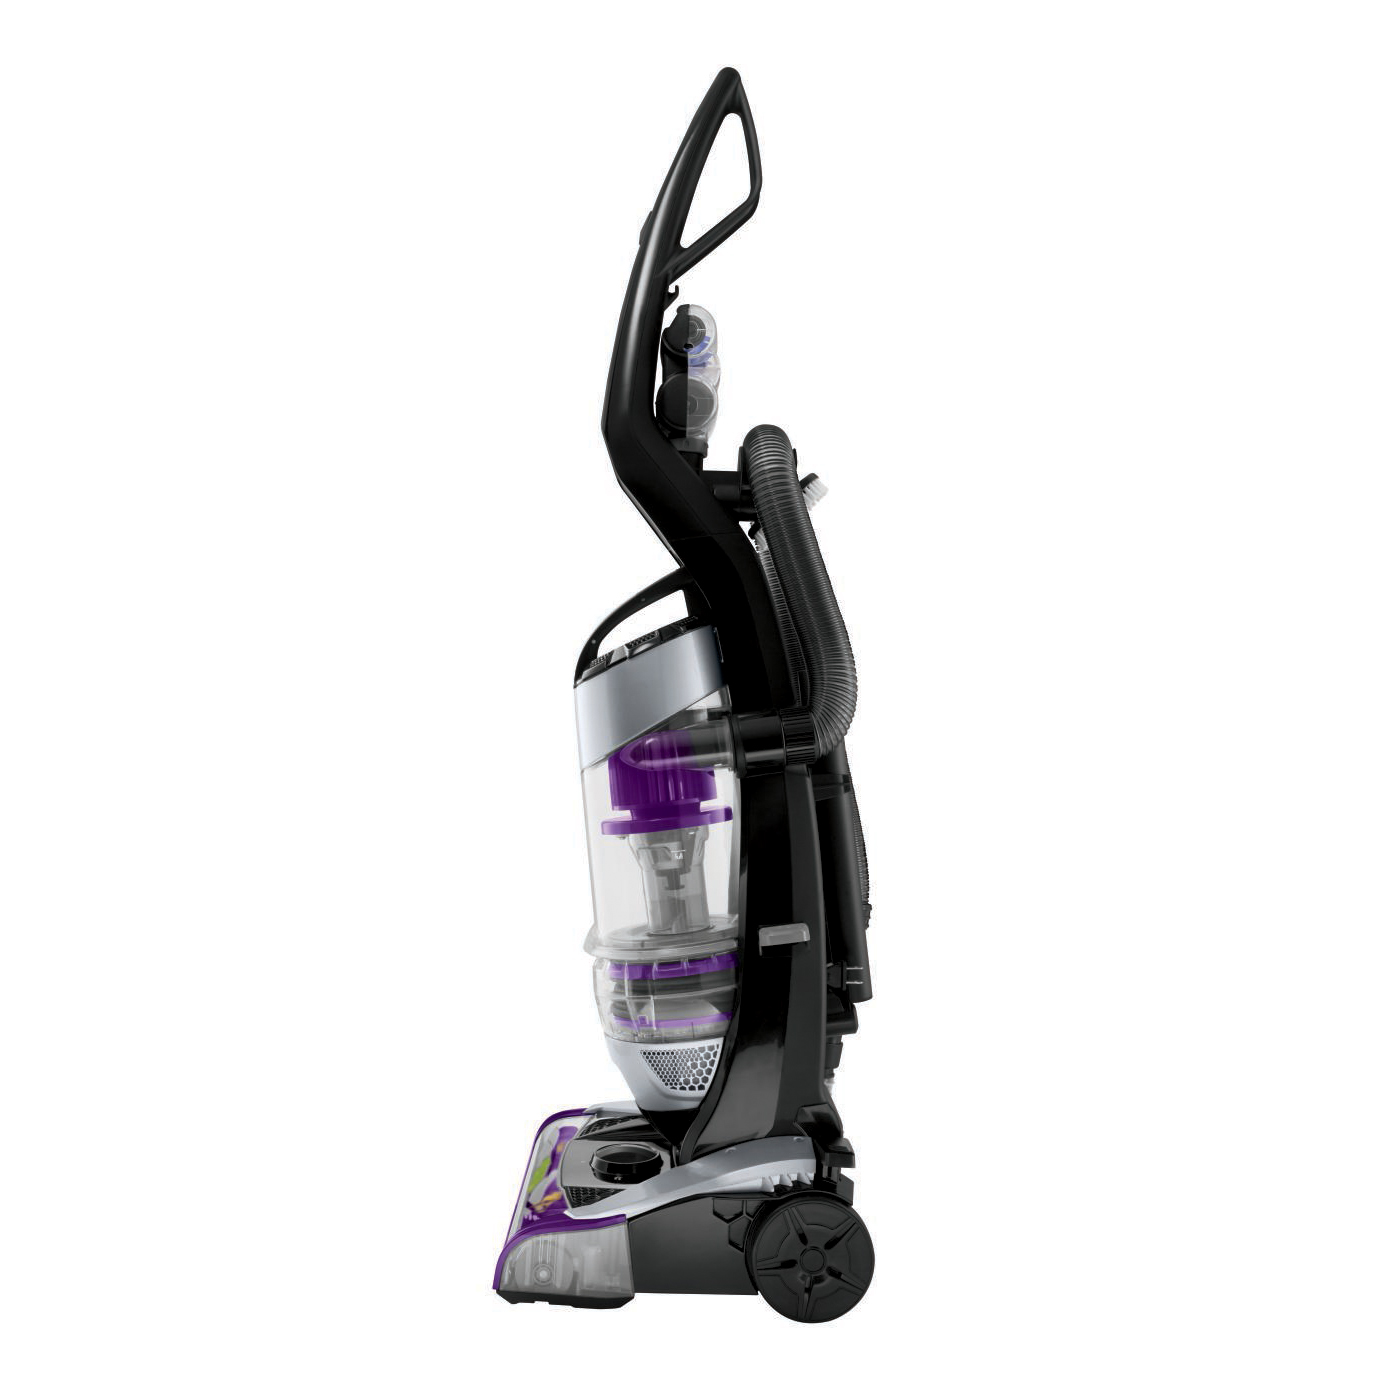 cleanview_pet_rewind_vacuum_1328_profile_view?modified=20151118162859&cdnv=2&mw=500&mh=500 cleanview� pet rewind vacuum bissell�  at n-0.co